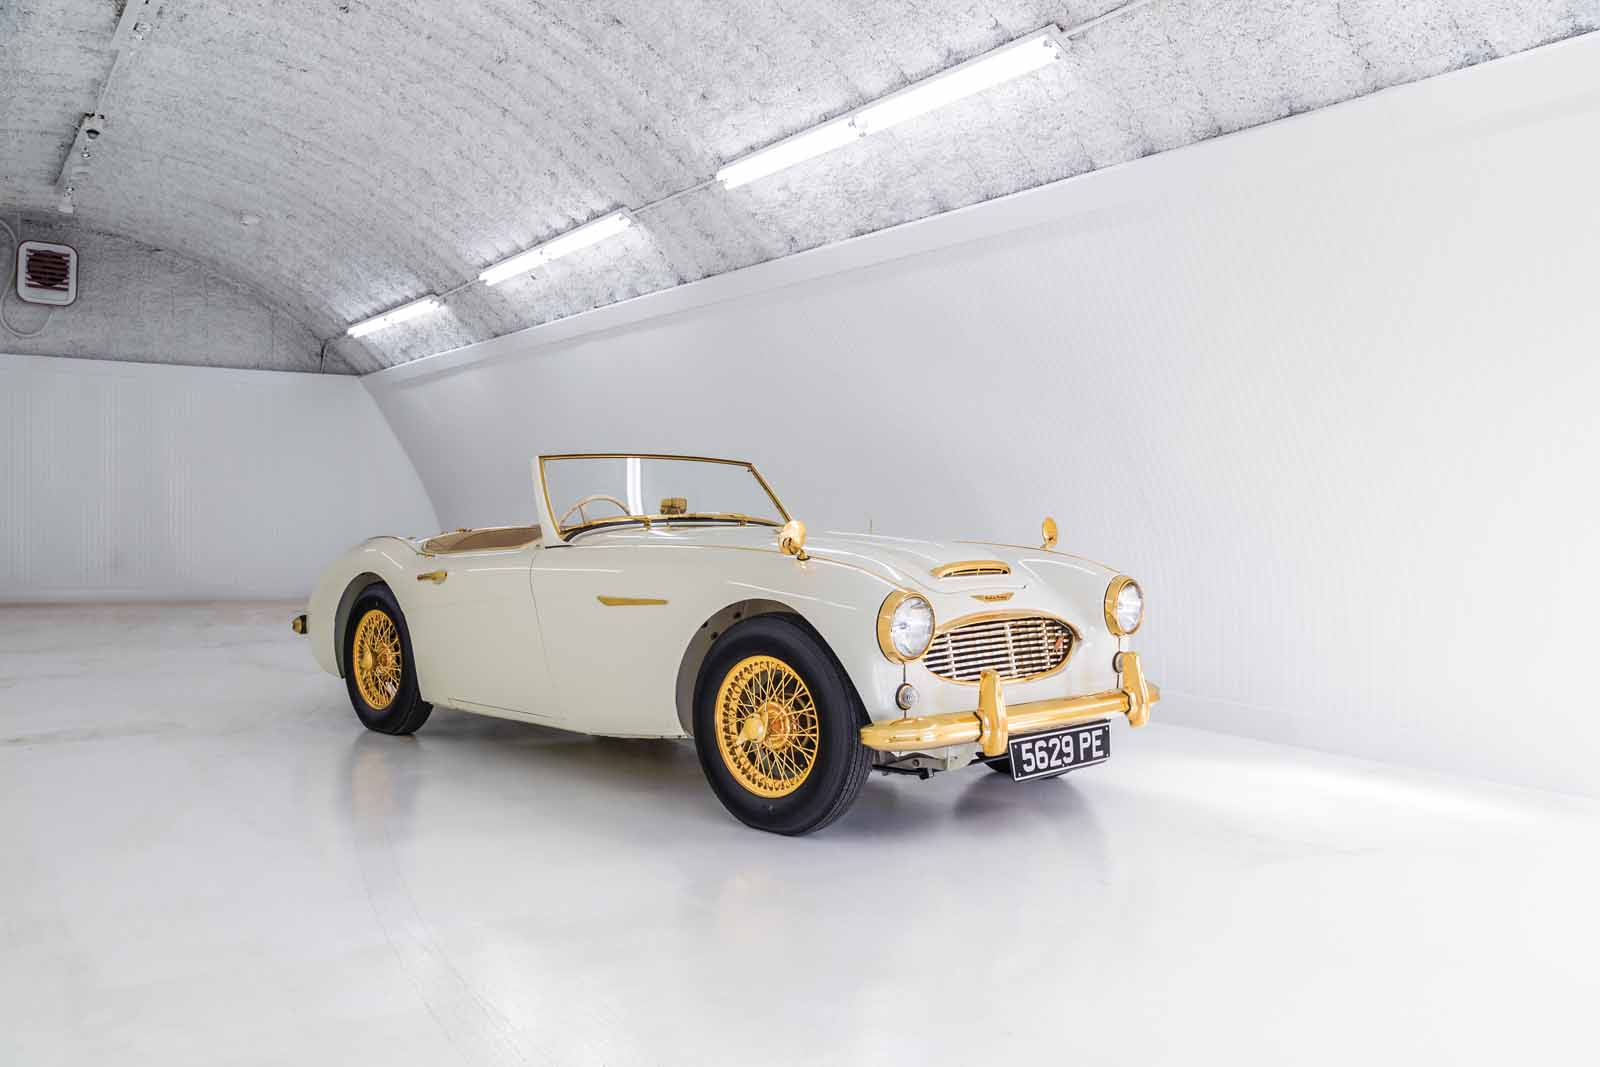 This Austin Healey Has 24K Gold Trim And A Real Ivory